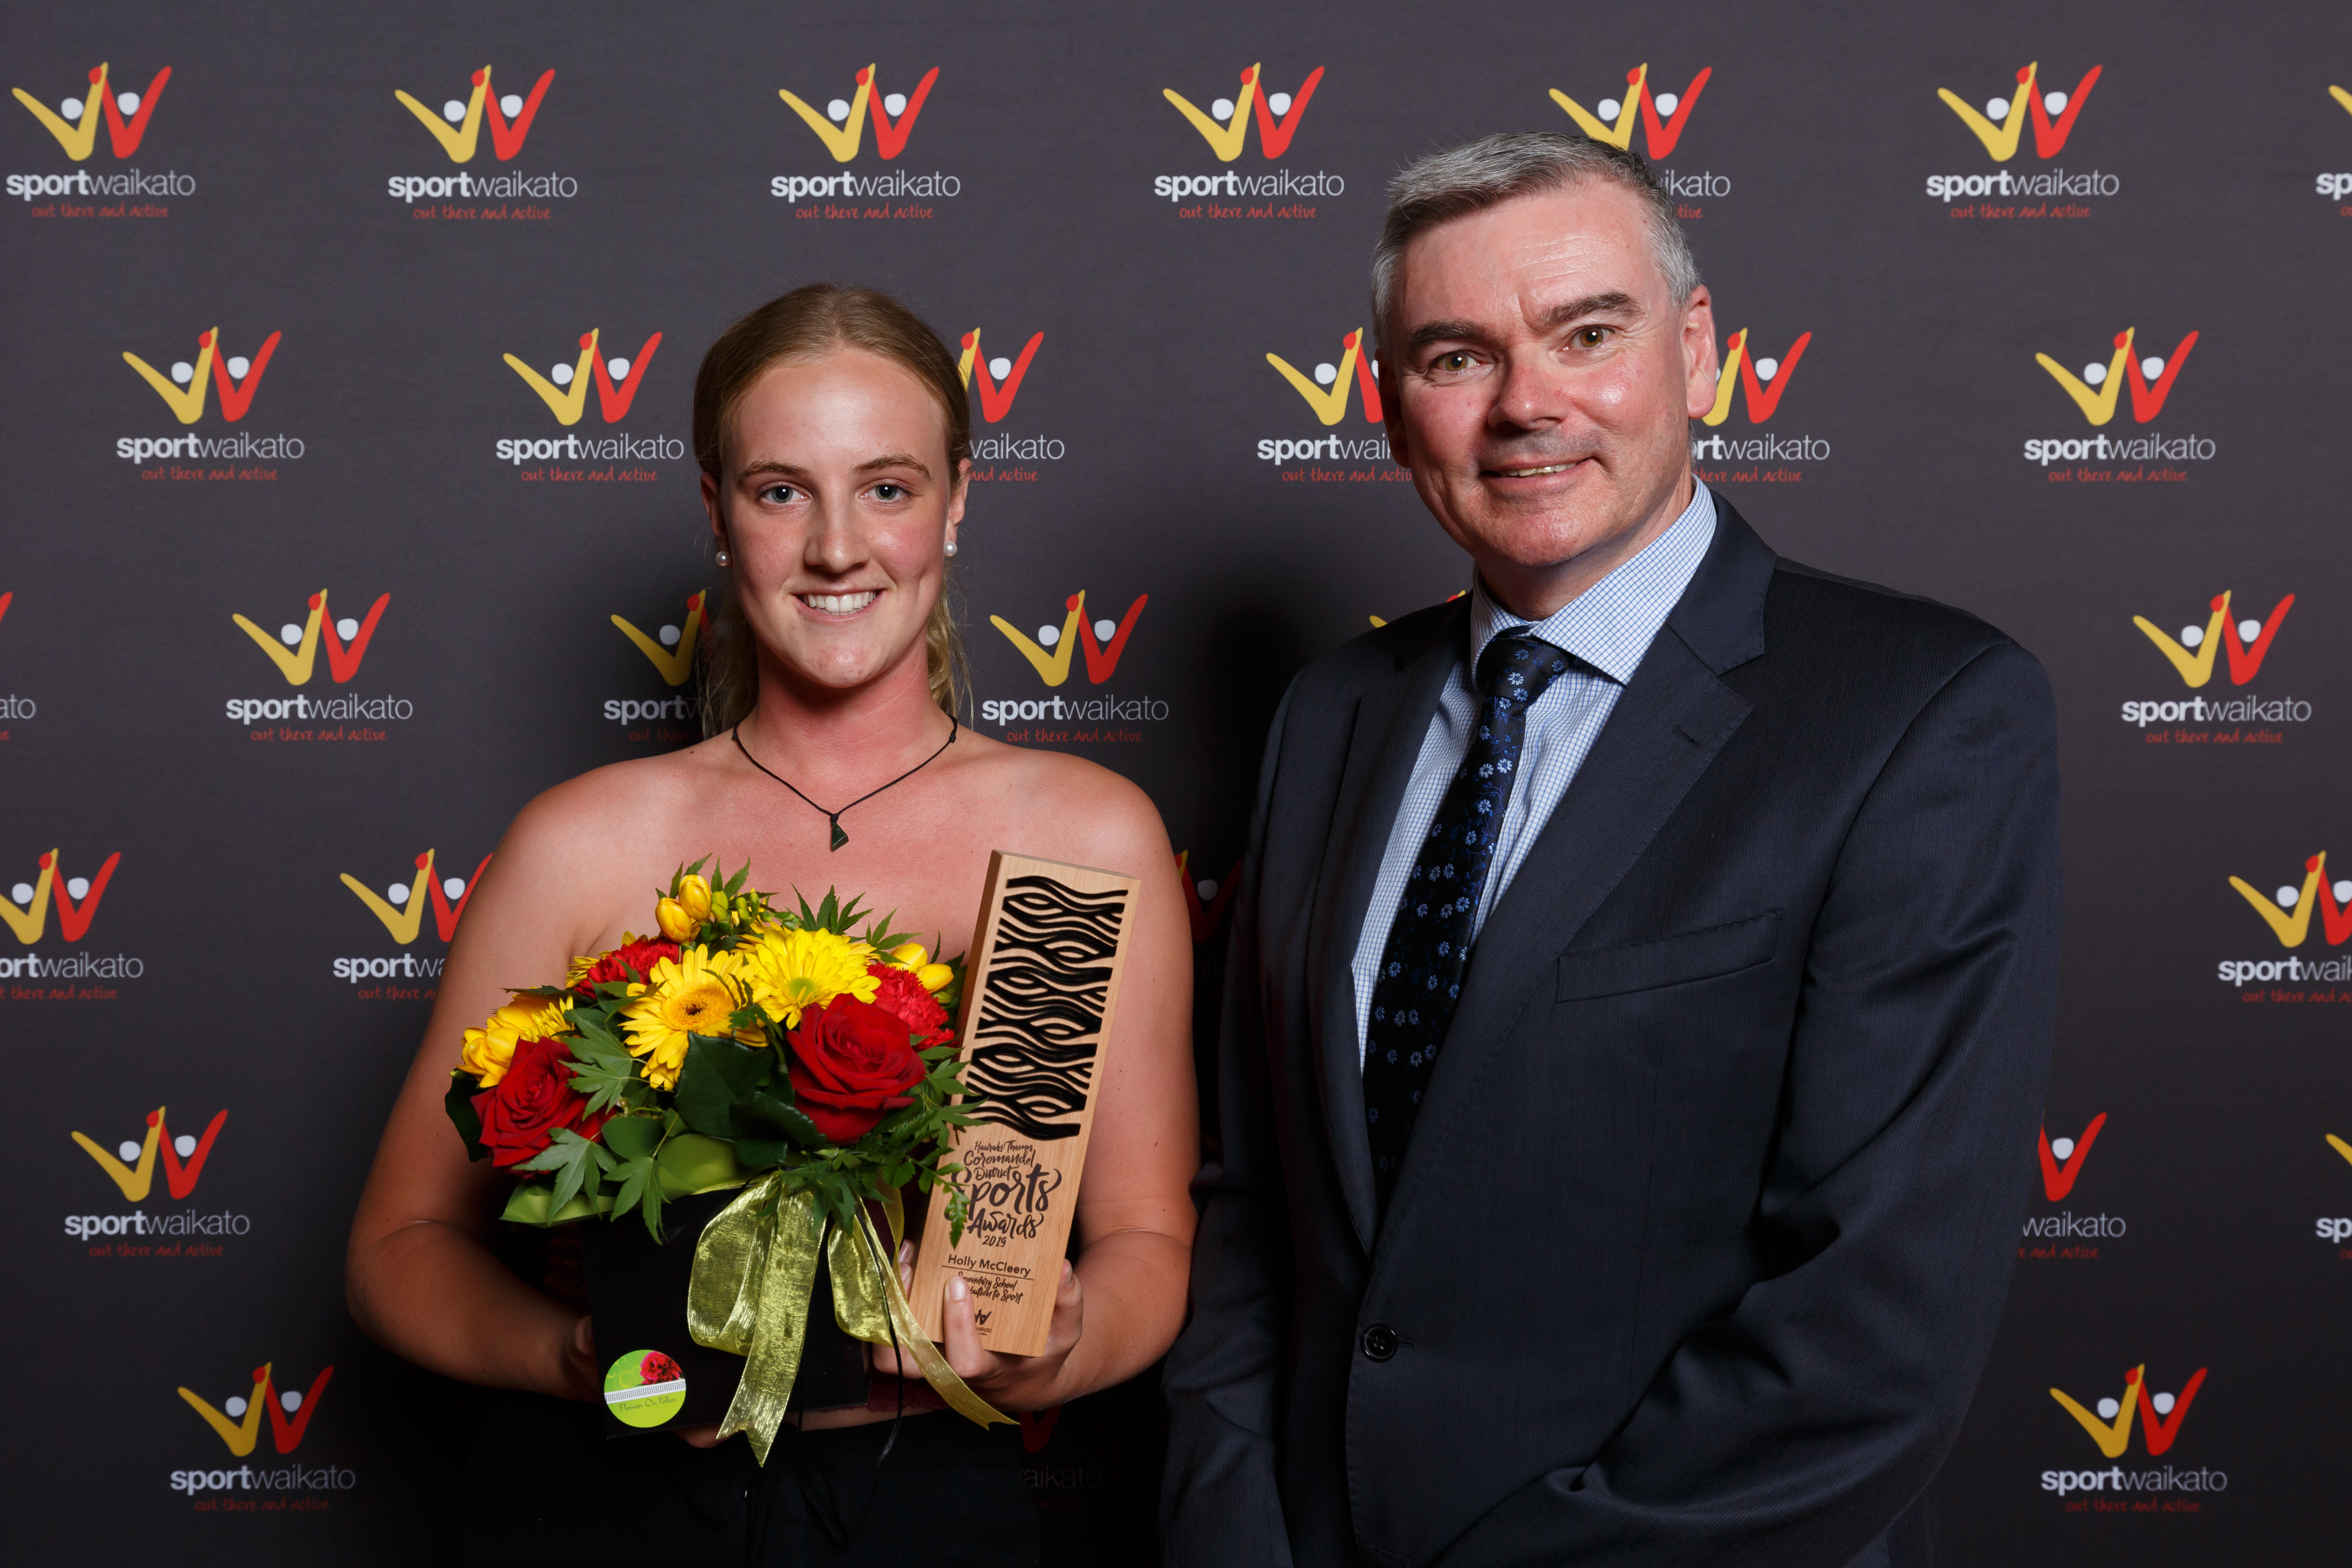 2019 Hauraki/Thames Coromande District Sports Awards winners announced!